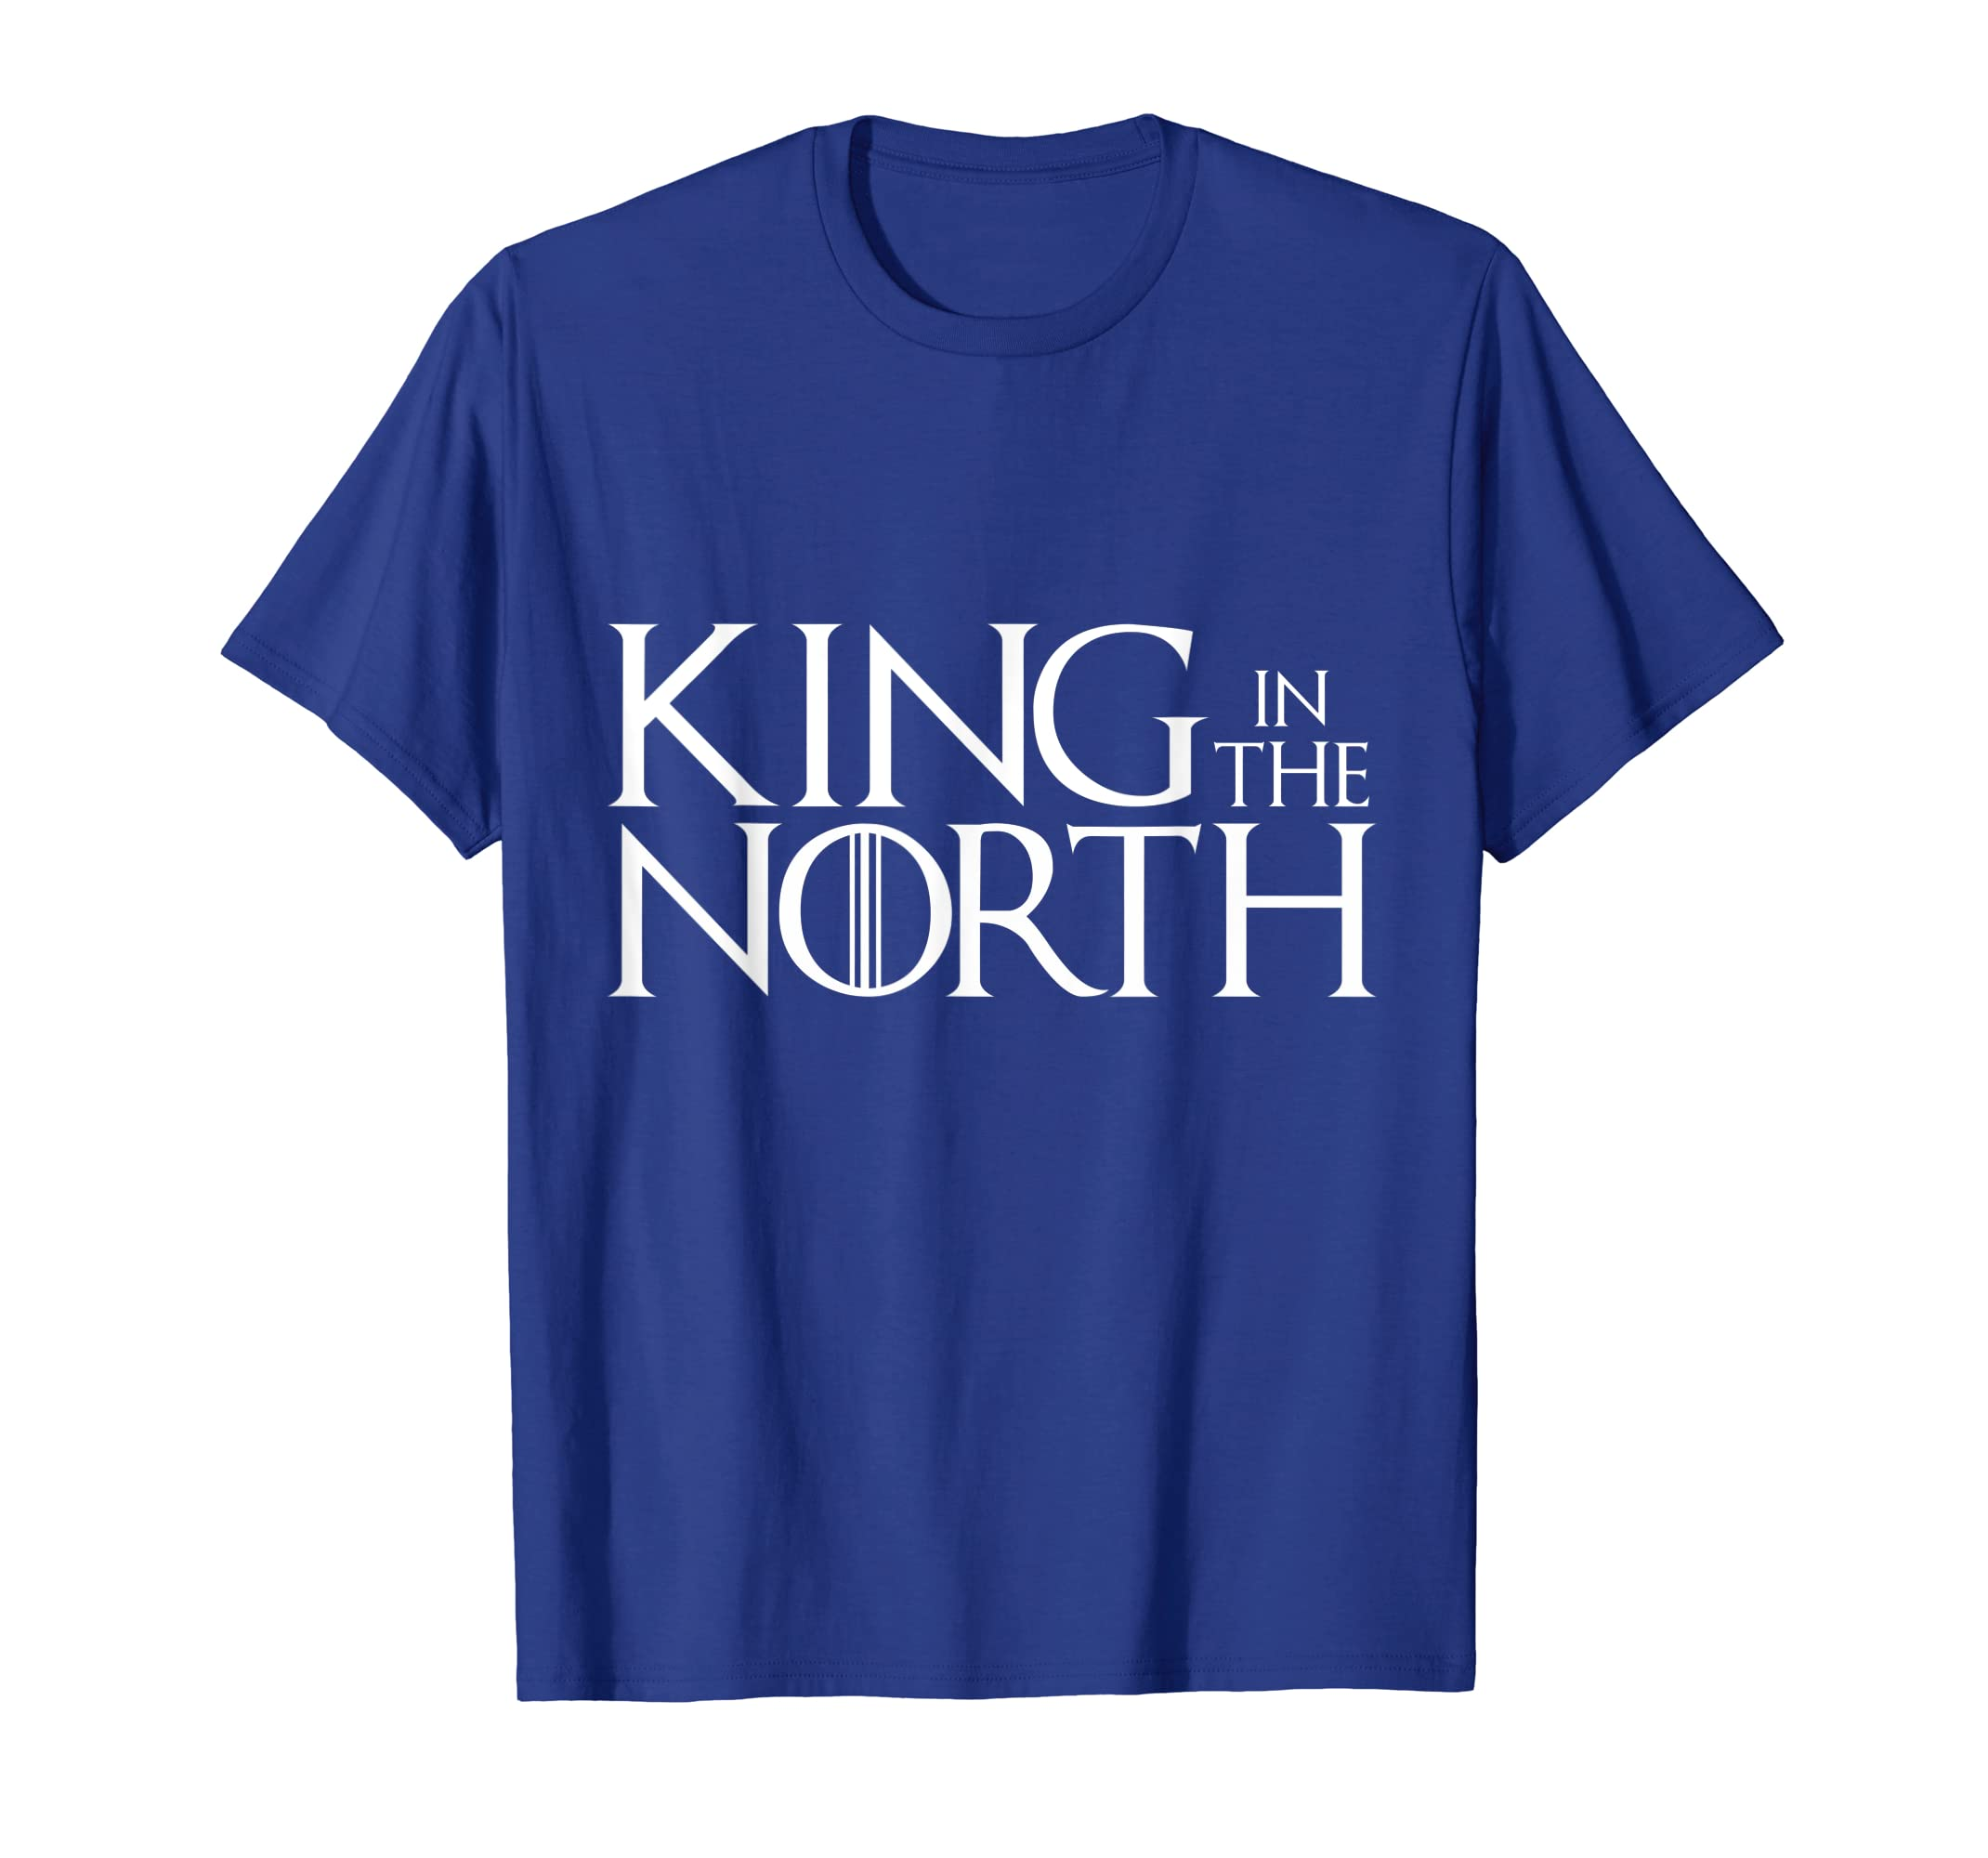 dbee01467 Amazon.com  The King In The North T-Shirt  Clothing